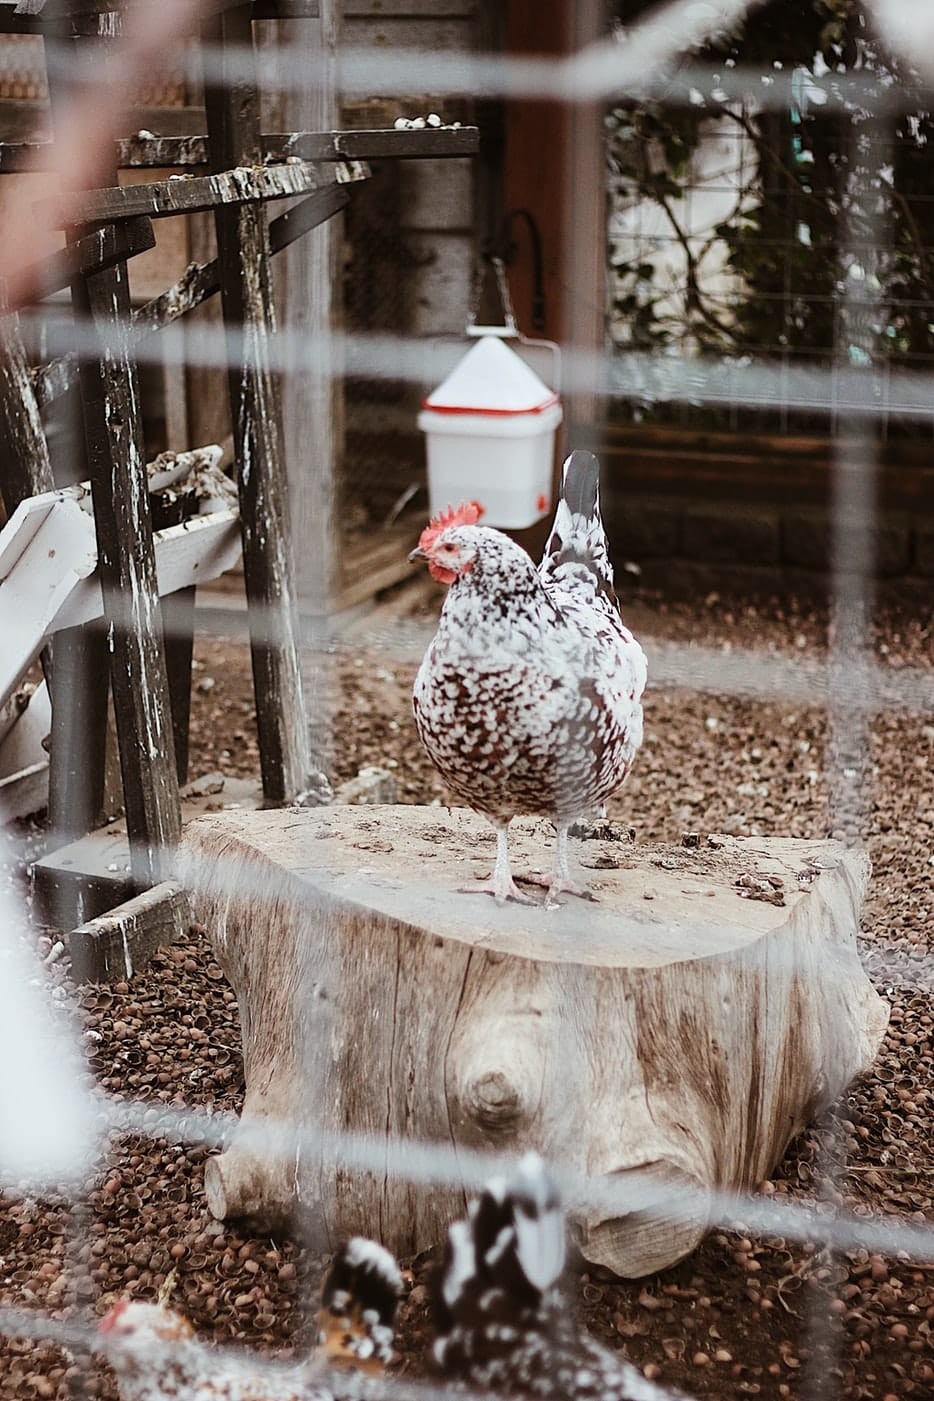 Best Electric Fence for Chickens 3